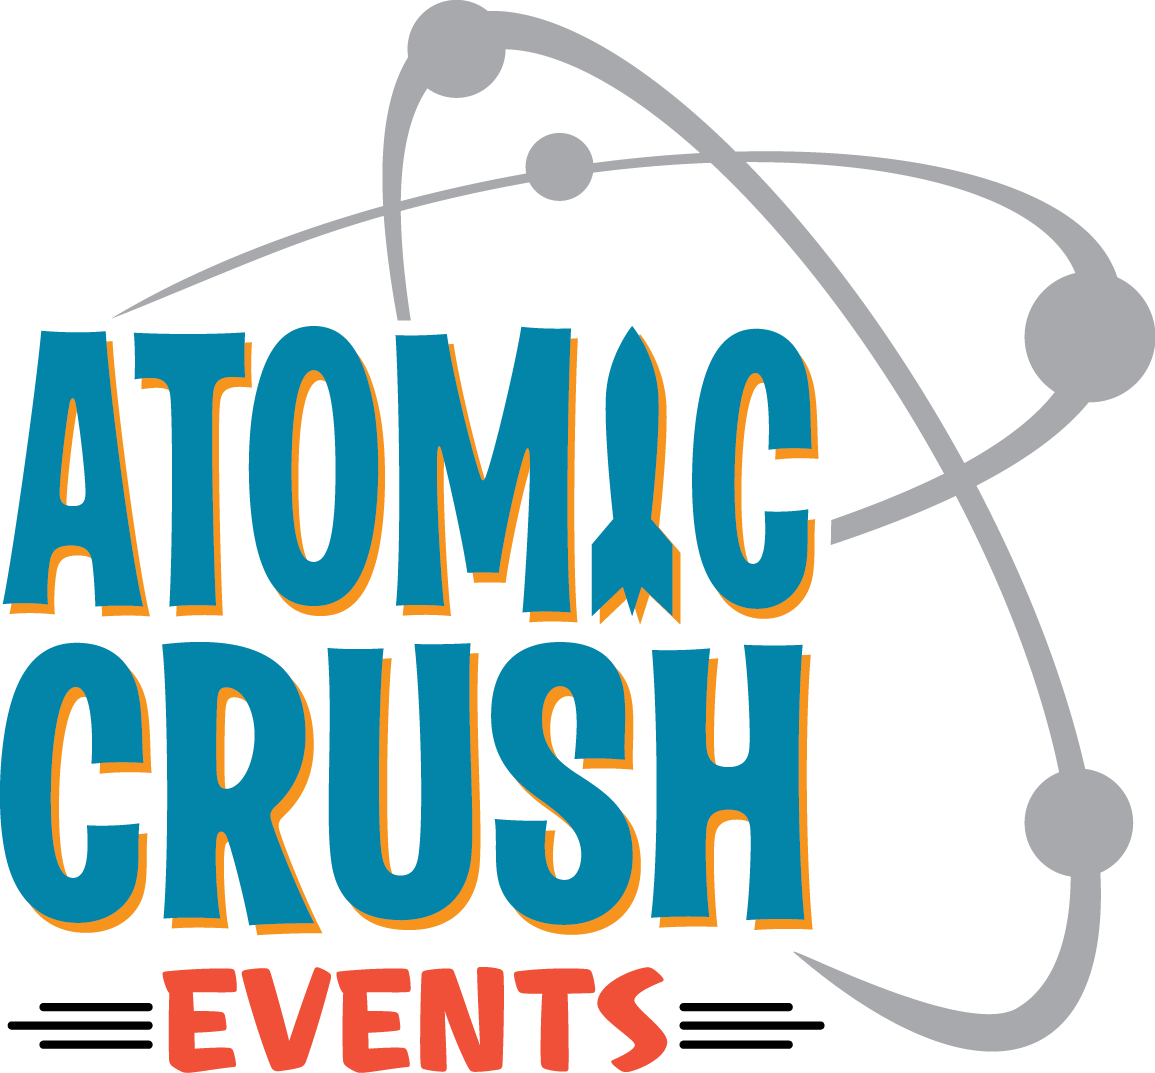 Atomic Crush Events Logo